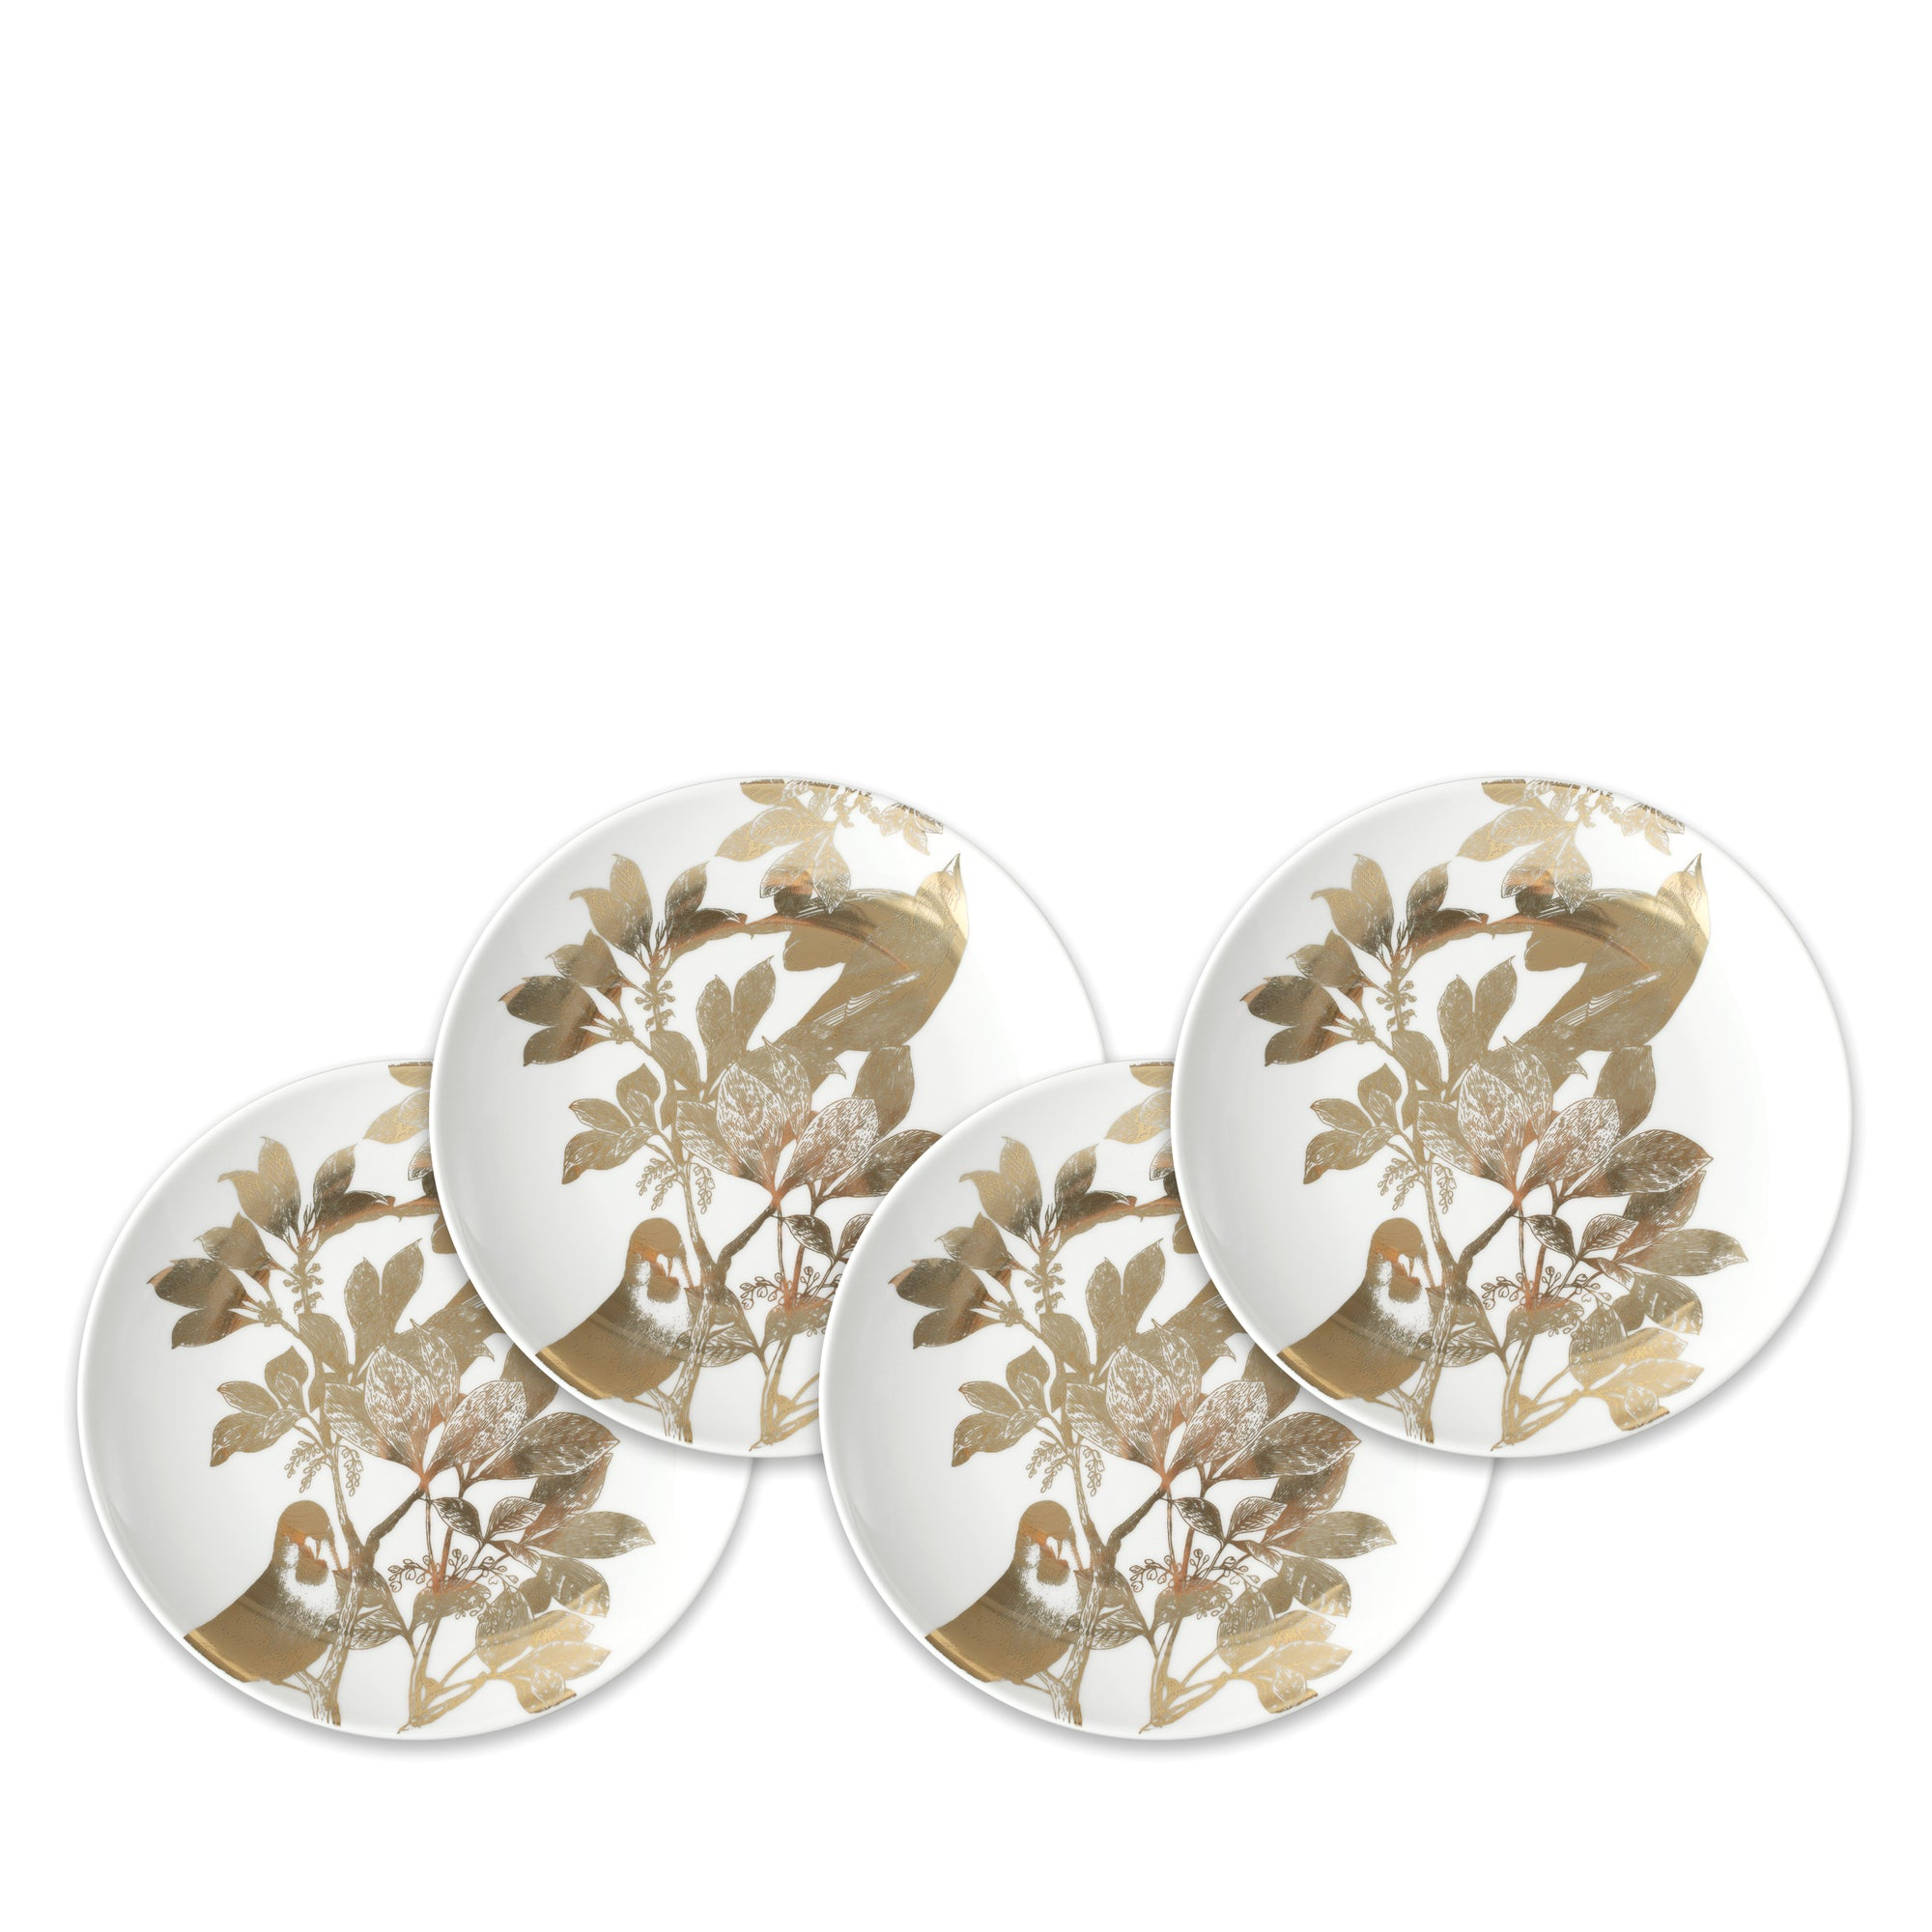 Arbor Gold Birds Canapé Plates Boxed Set/4 - Caskata